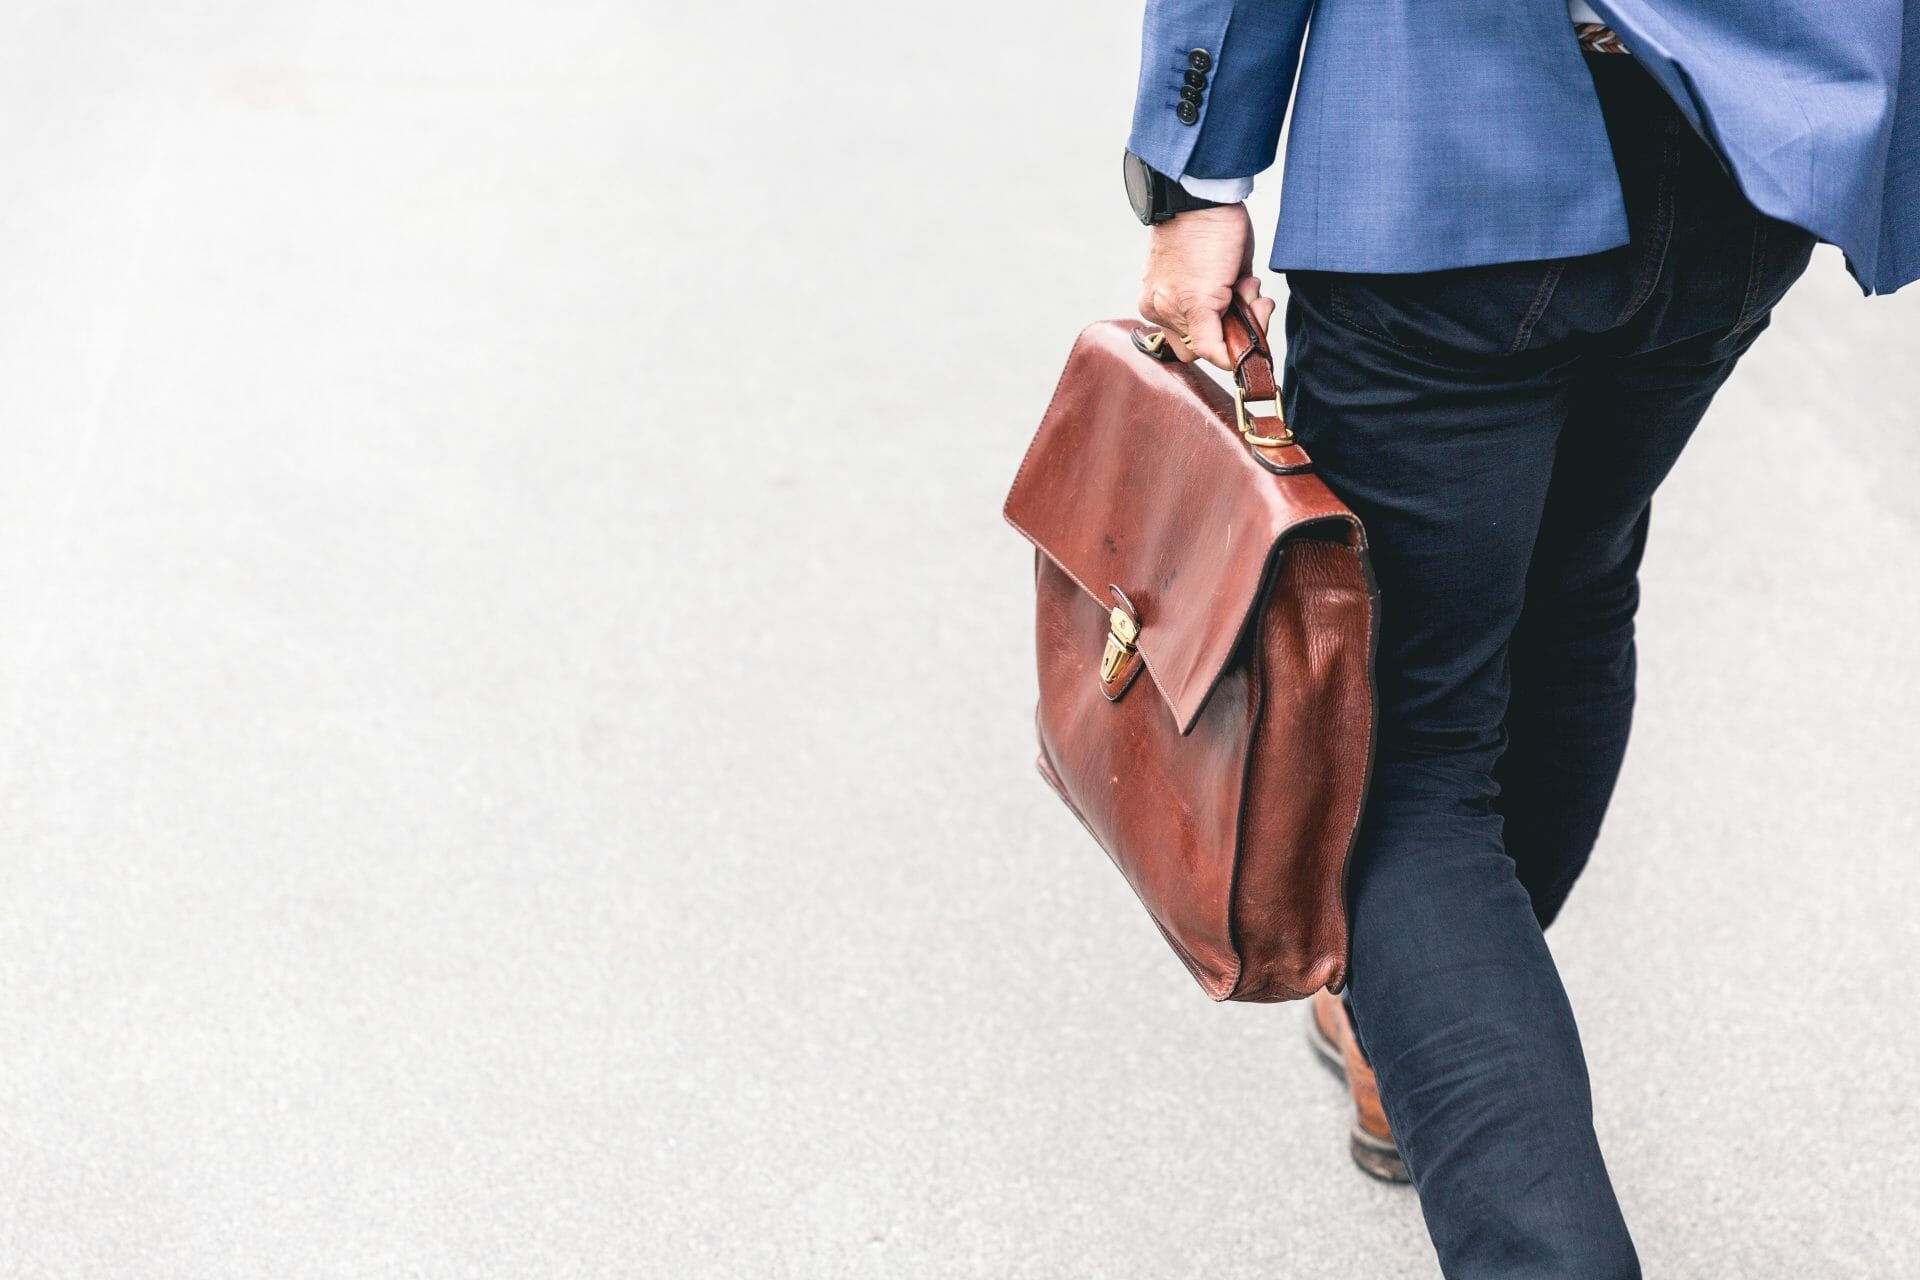 Picture of man walking with bag and suit coat Real Estate News for Investors Podcast Episode #720